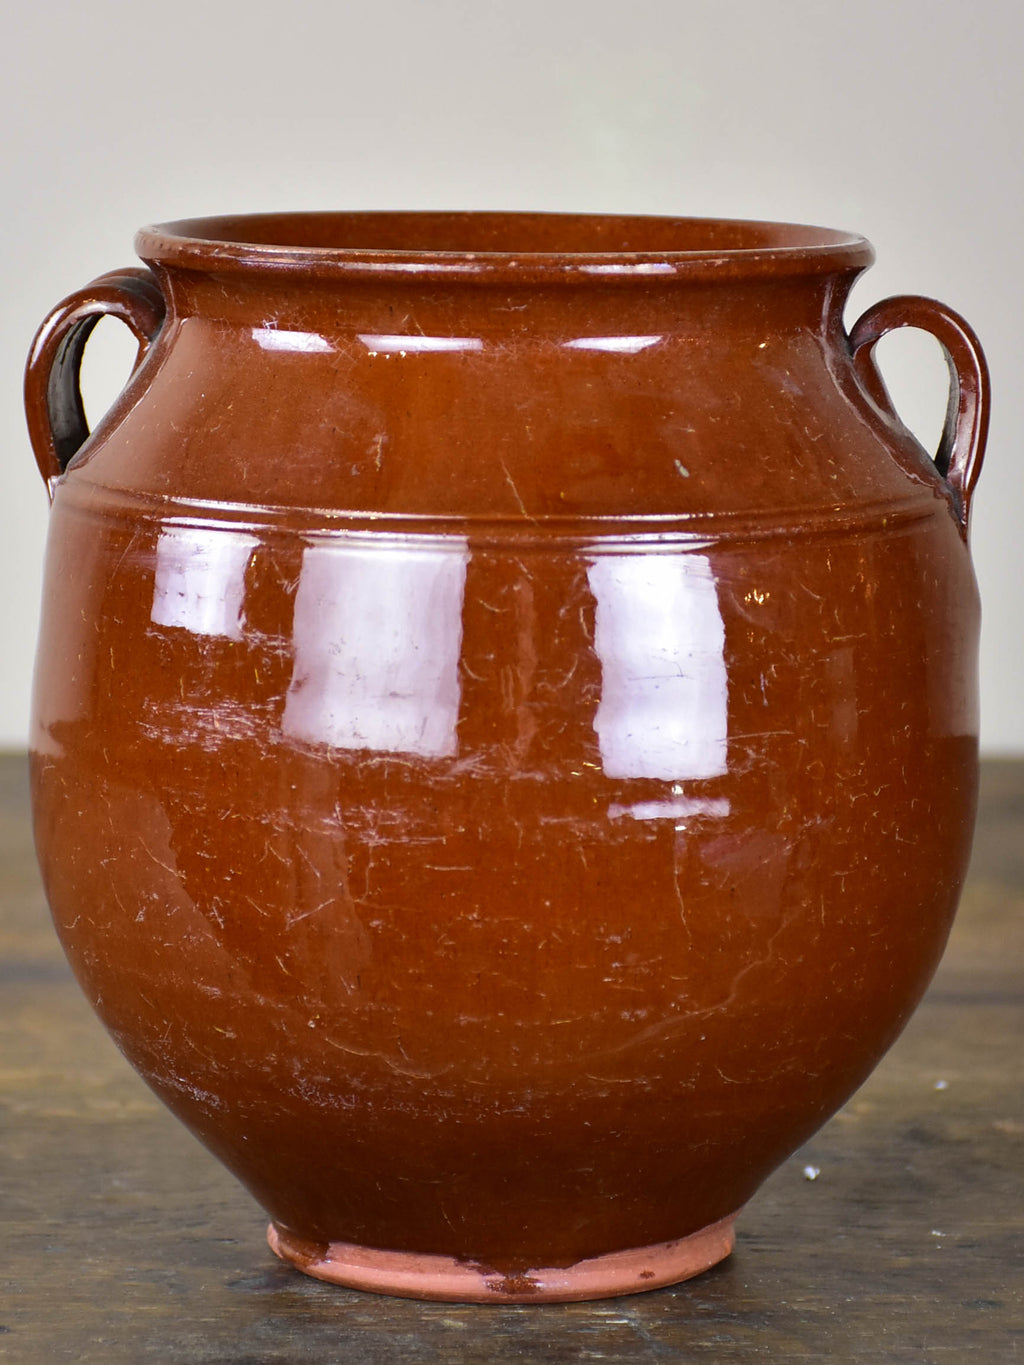 Vintage French confit pot with unusual brown glaze